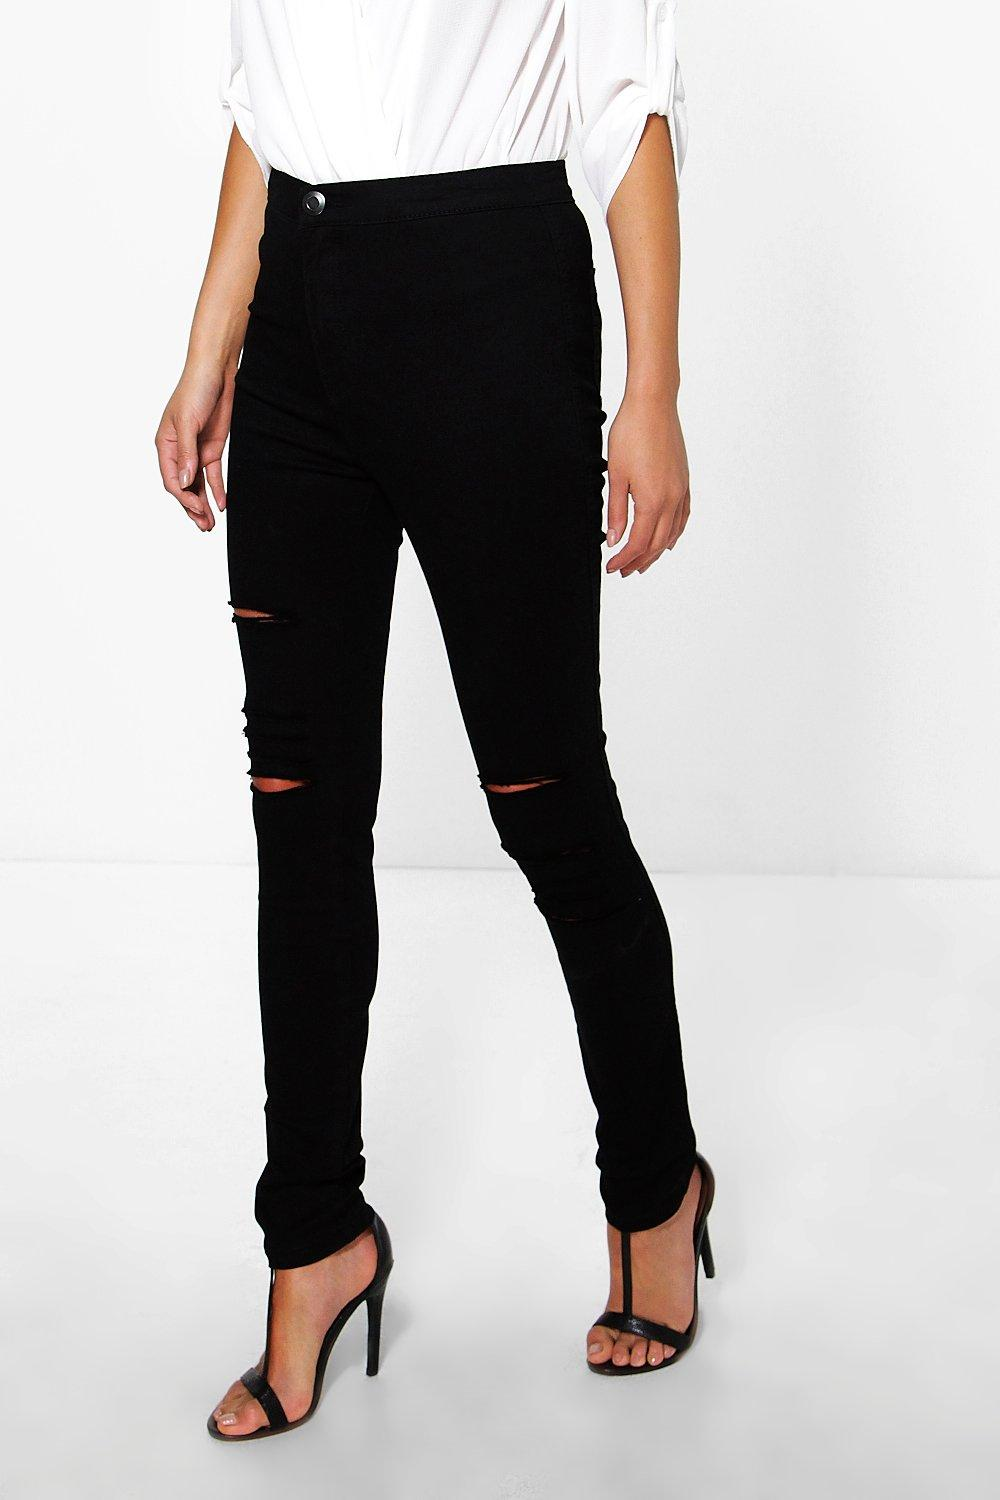 Esme High Rise Ultra Rips Tube Jeans